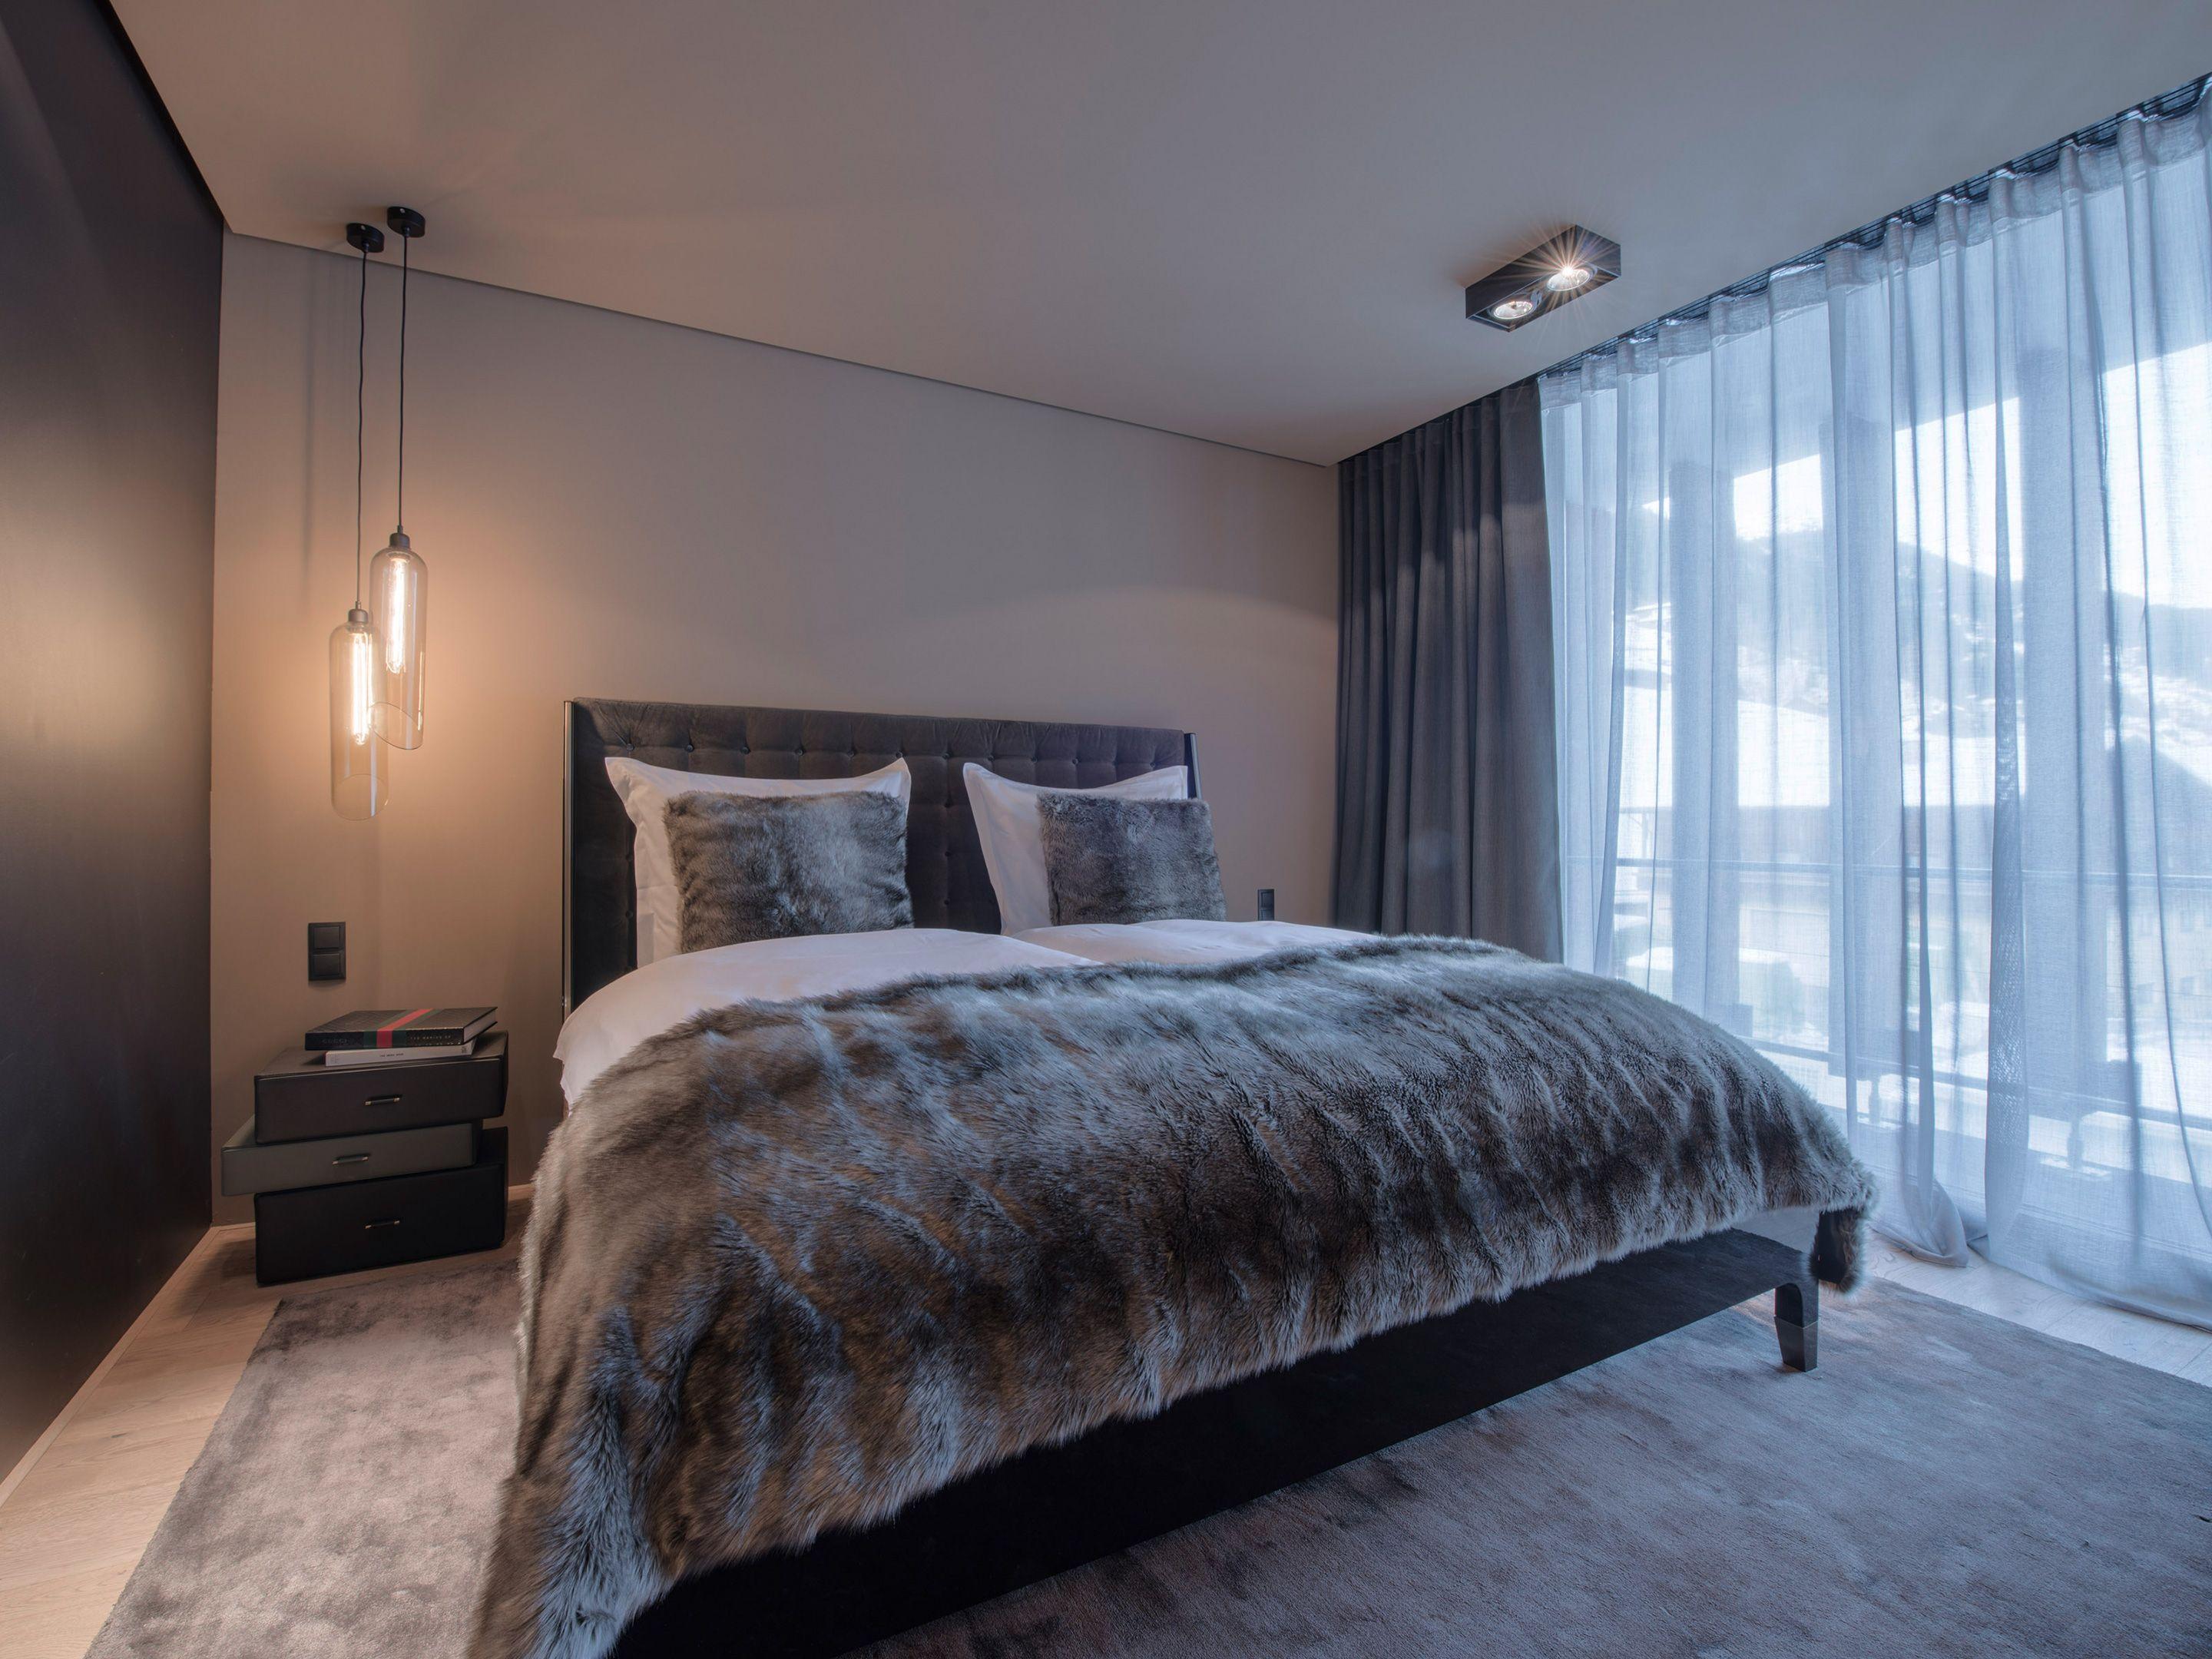 rooms suites at zhero hotel in ischgl austria design hotels. Black Bedroom Furniture Sets. Home Design Ideas